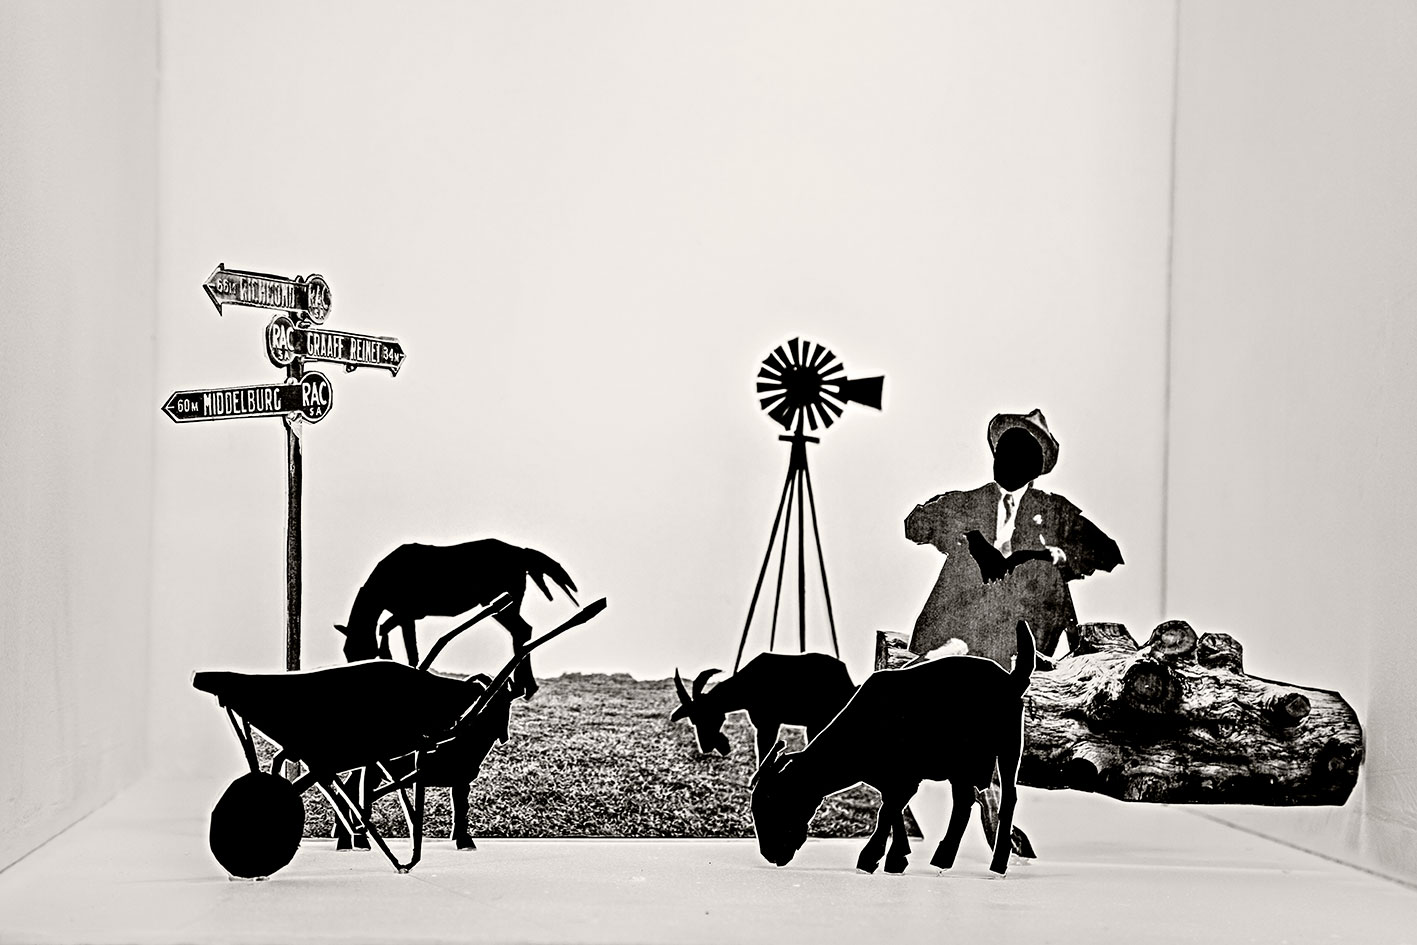 """Helen's father grazing his goats, 2018. From the series, """"Tell Tale."""" Inspired by Maverick by Lauren Beukes and Nechama Brodie. Inkjet print on cotton rag paper"""